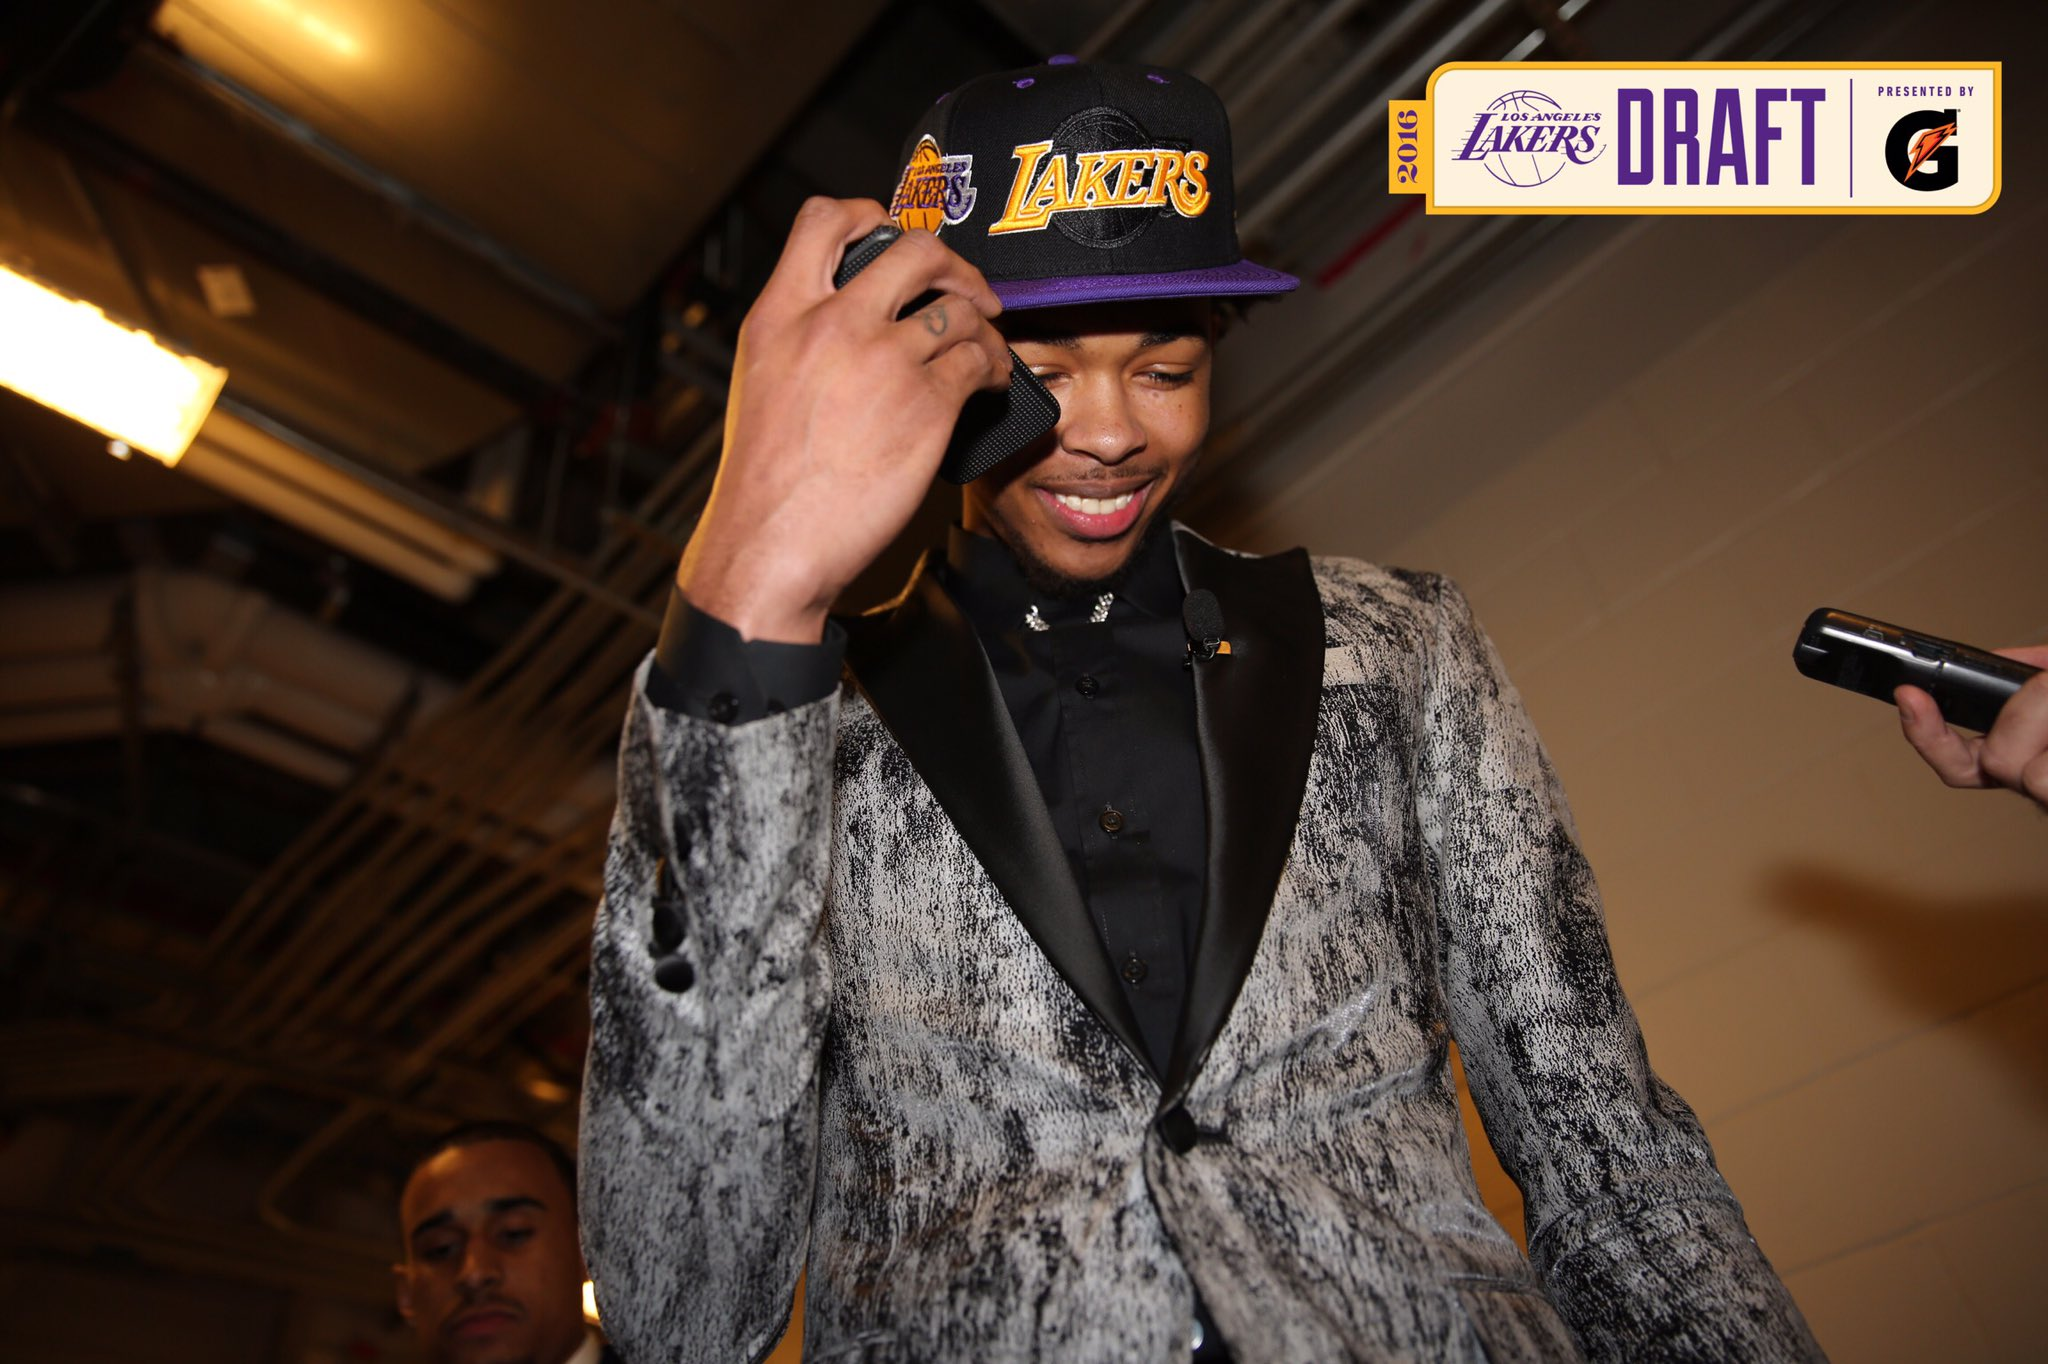 Brandon ingram will have a private training session with lakers